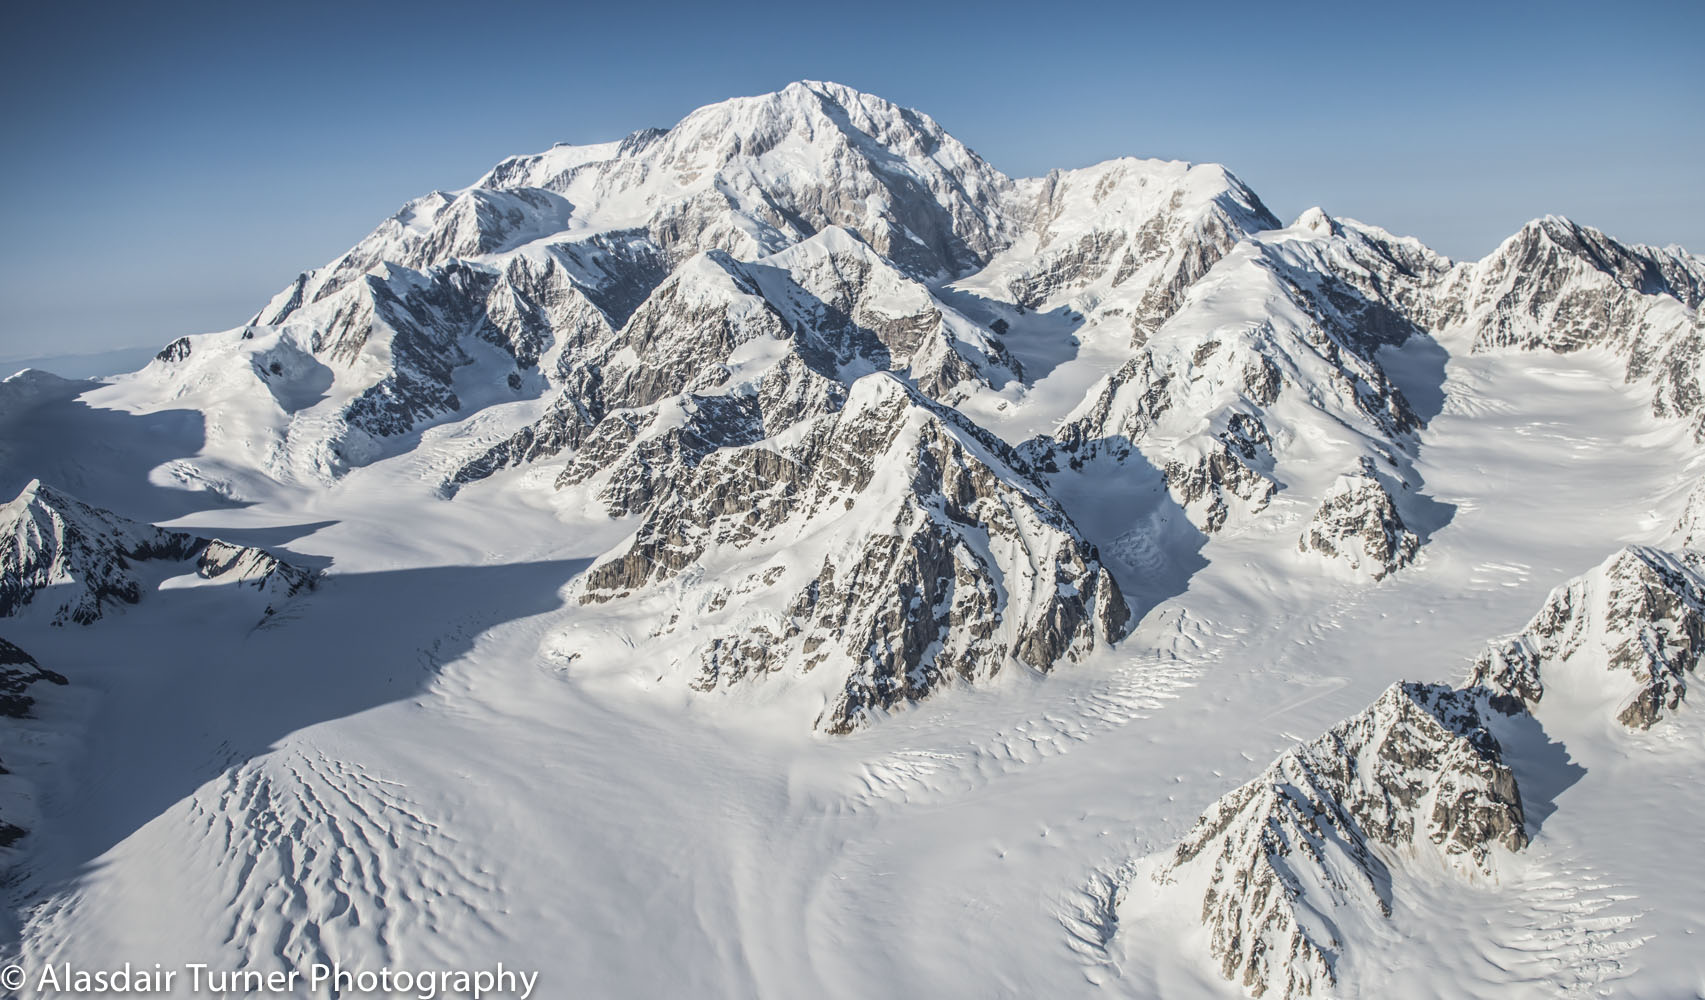 Denali, and the Kahiltna Glacier as seen from 12,000 feet. This is not a view that is seen very often since most people are at a much lower altitude when they get to this area. I love this shot since it really shows Denali as a individual mountain in a way I have not seen before. It also contains the entire West Buttress route up the Kahiltna Glacier which is also rare to see in a photo. Click on the image to purchase.